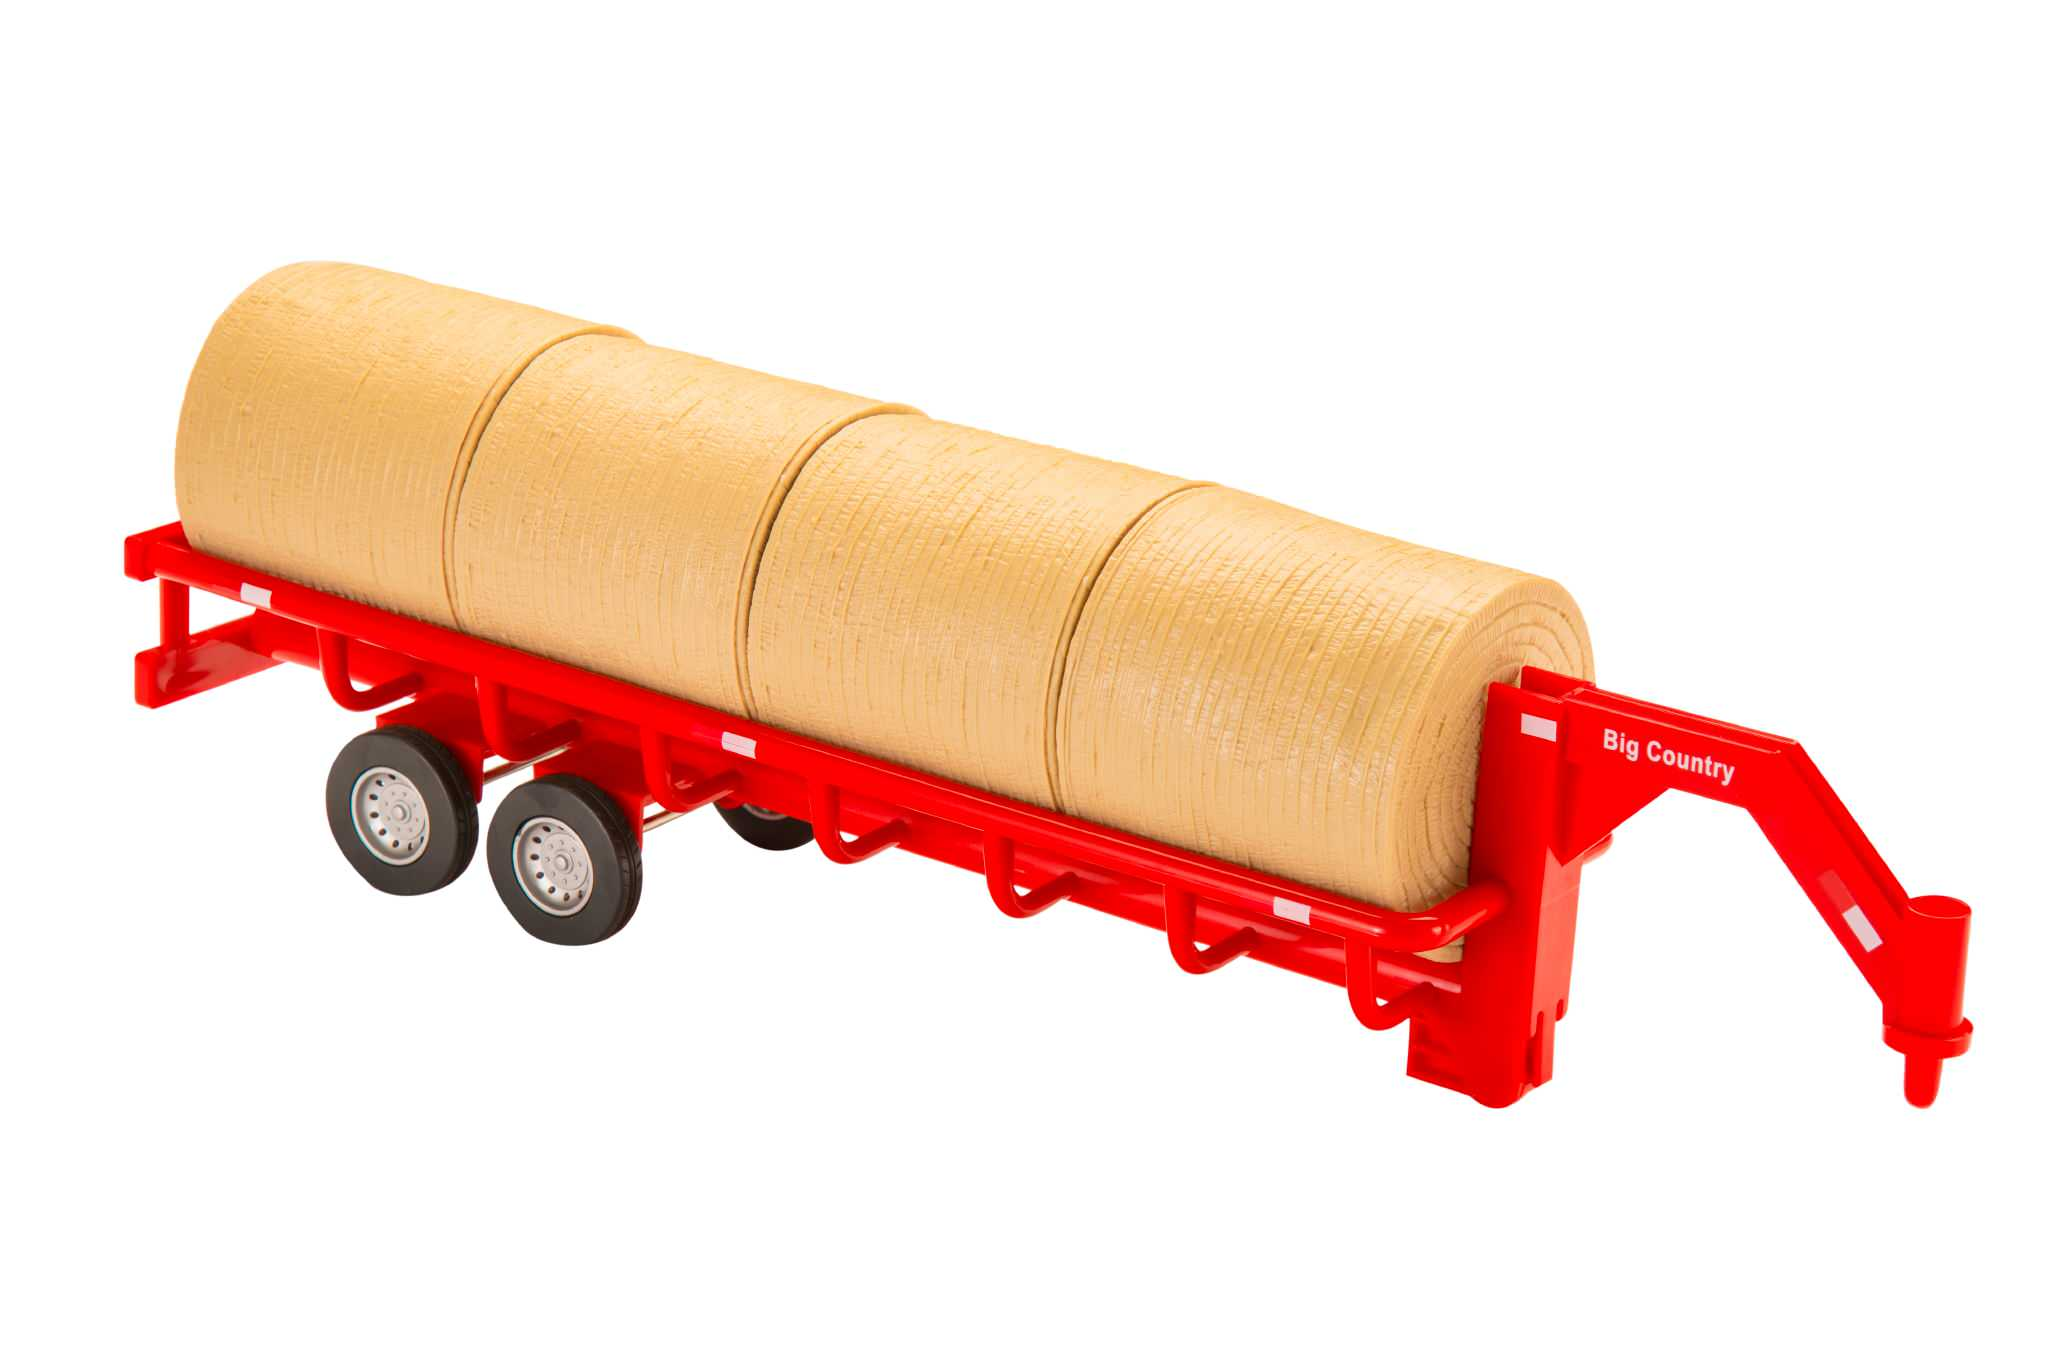 Big Country Farm Toys Hay Trailer by Big Country Farm Toys, LLC.